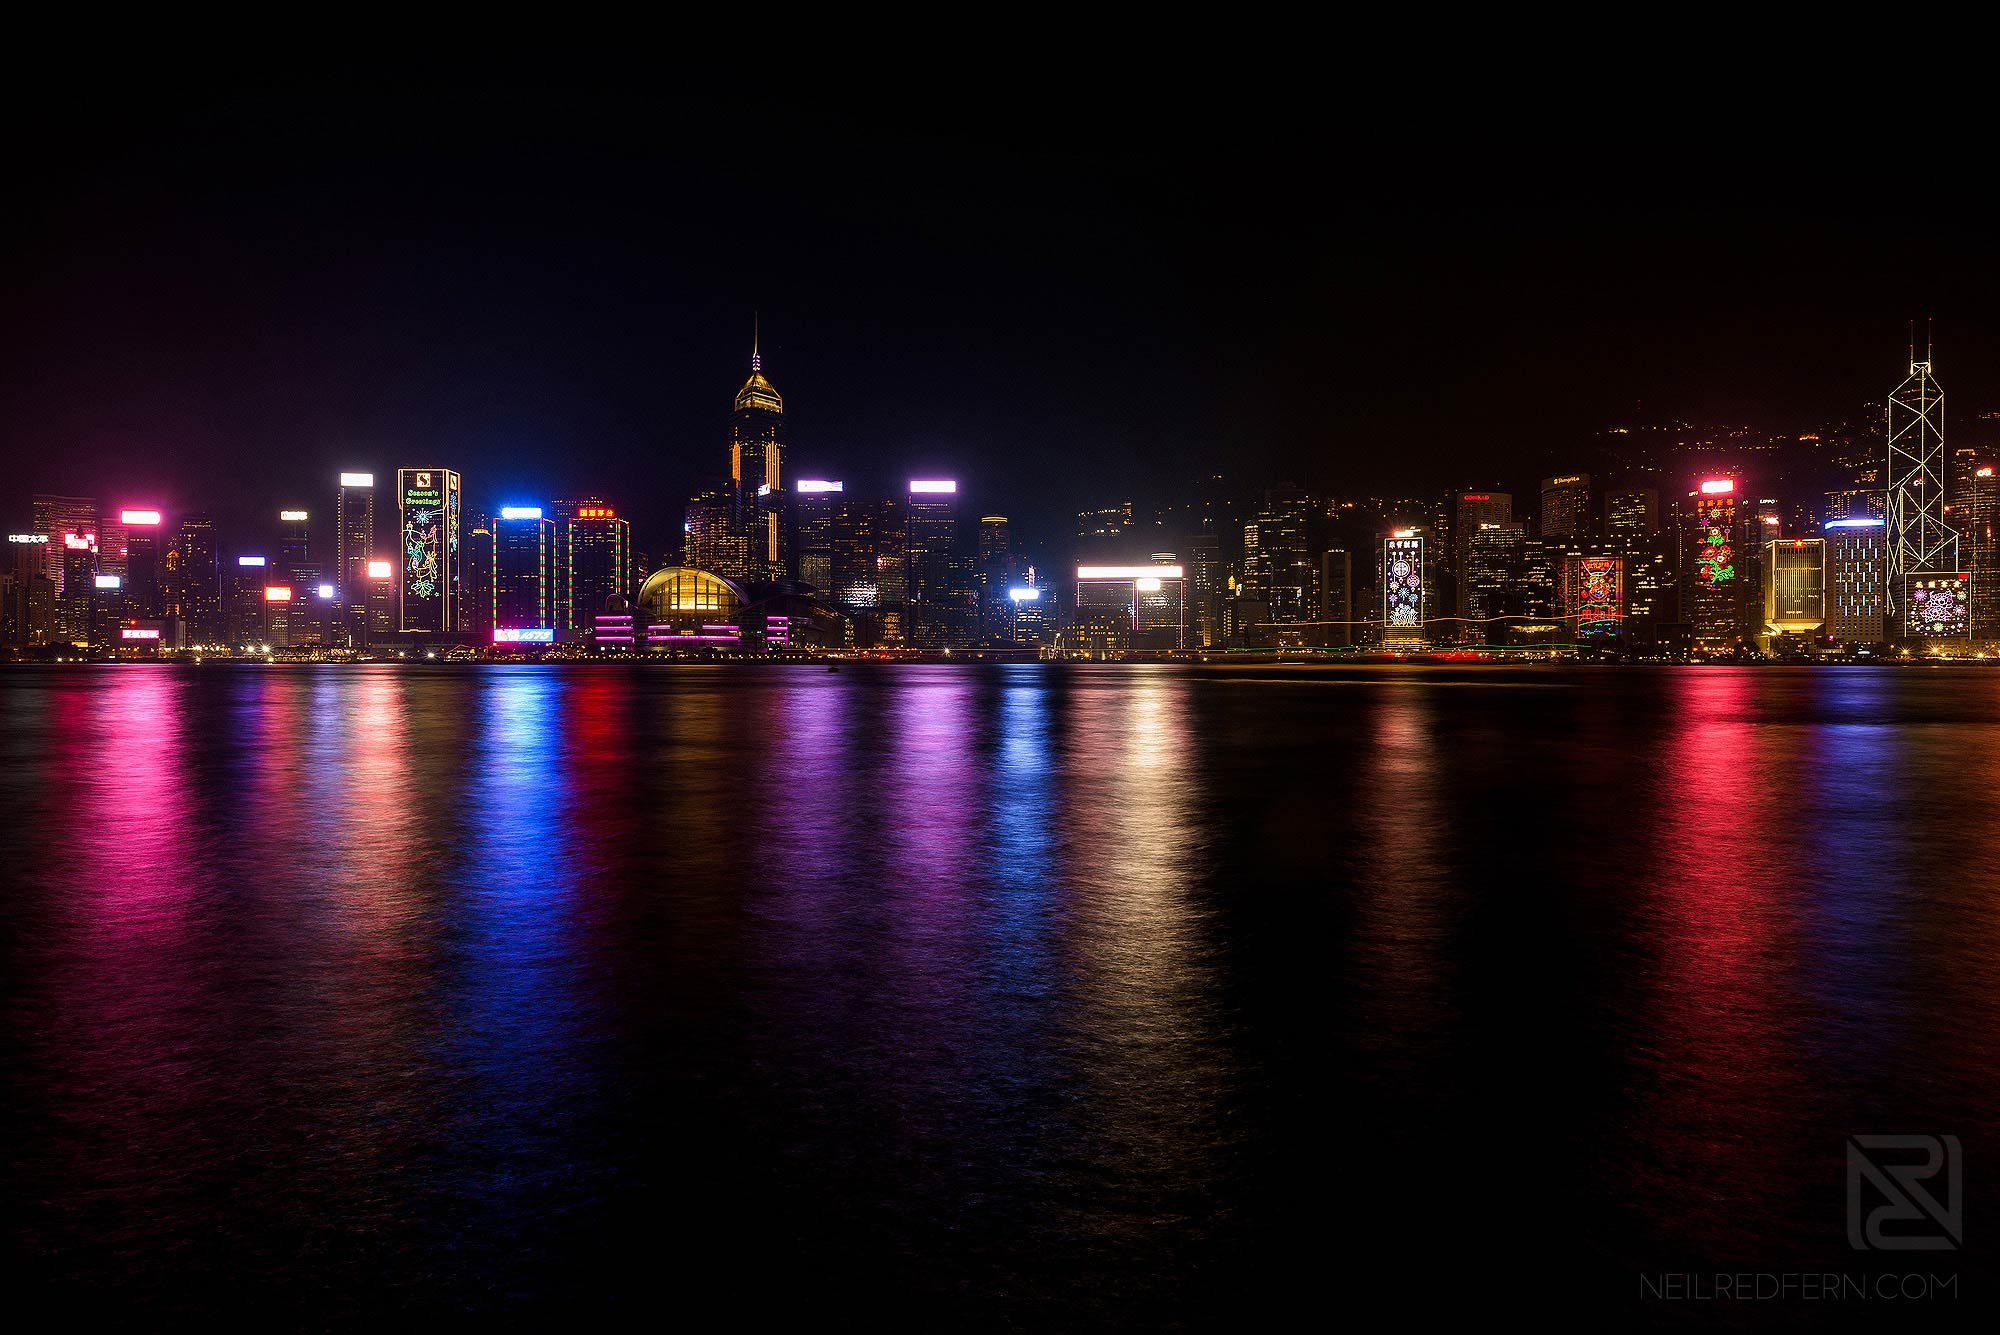 long exposure photograph of Victoria Harbour at night